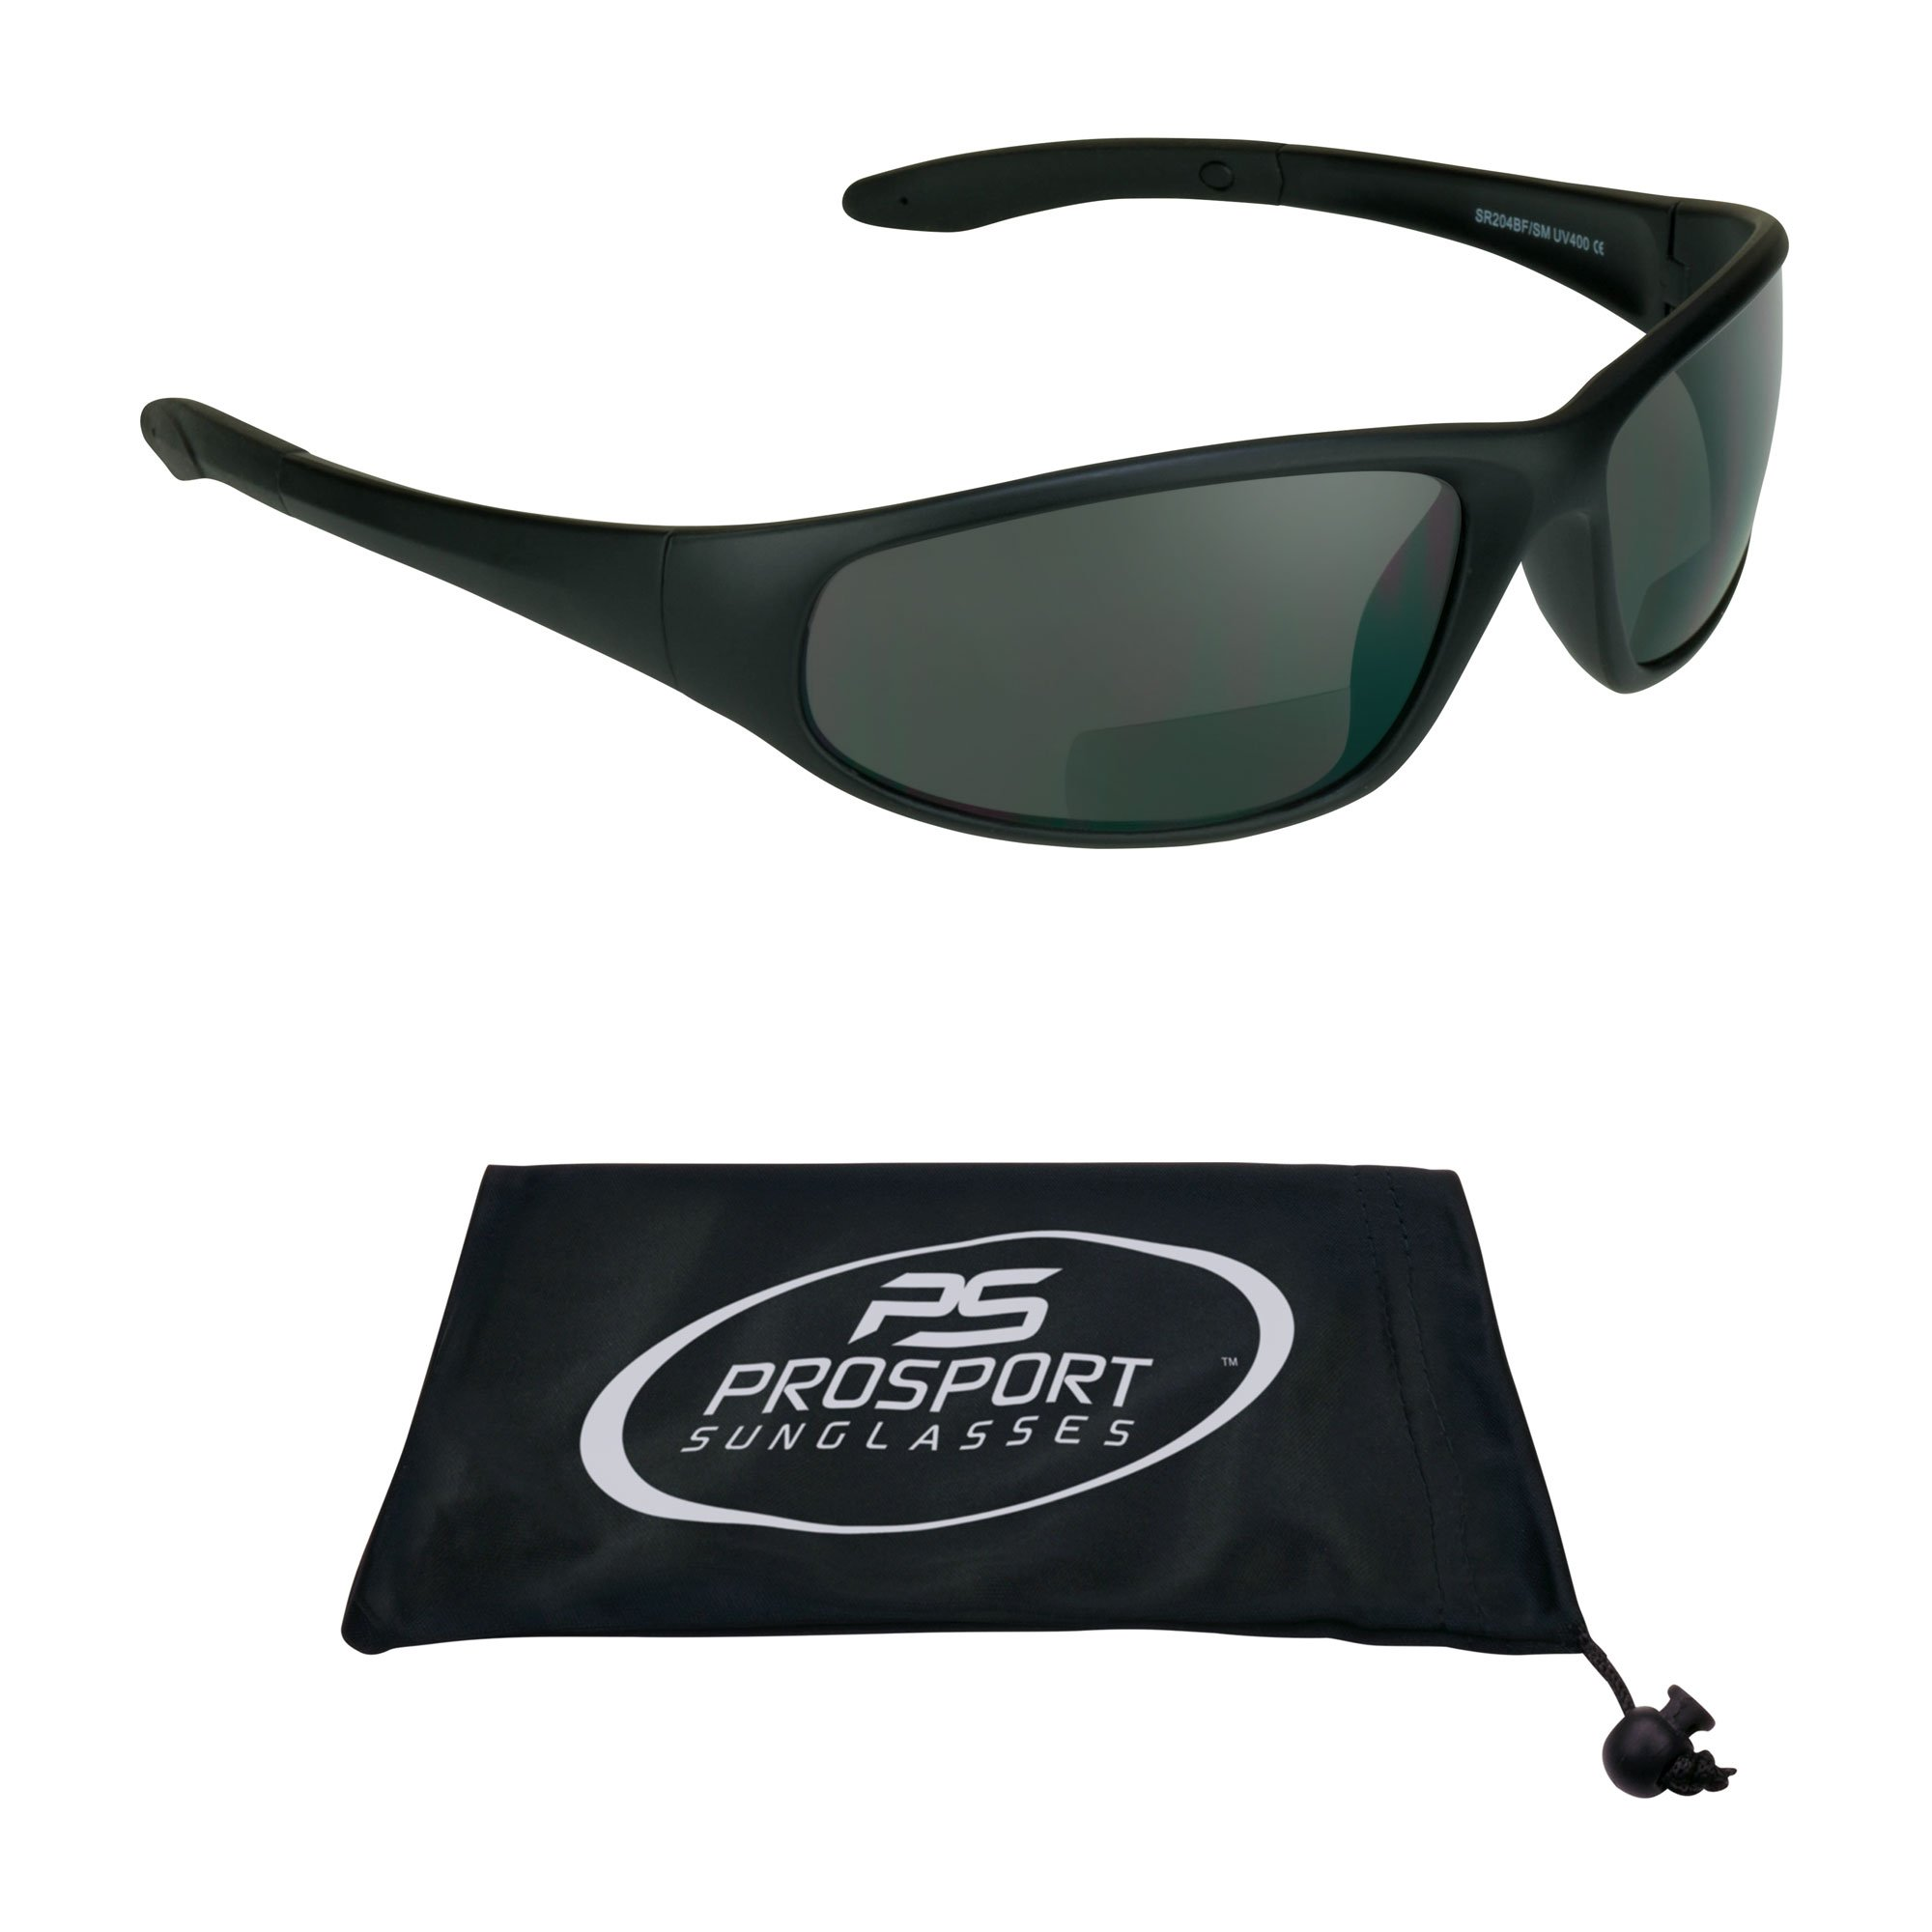 proSPORT Bifocal sunglasses with ANSI Z87 Polycarbonate Safety Smoke Lenses for Men and Women by proSPORTsunglasses.com